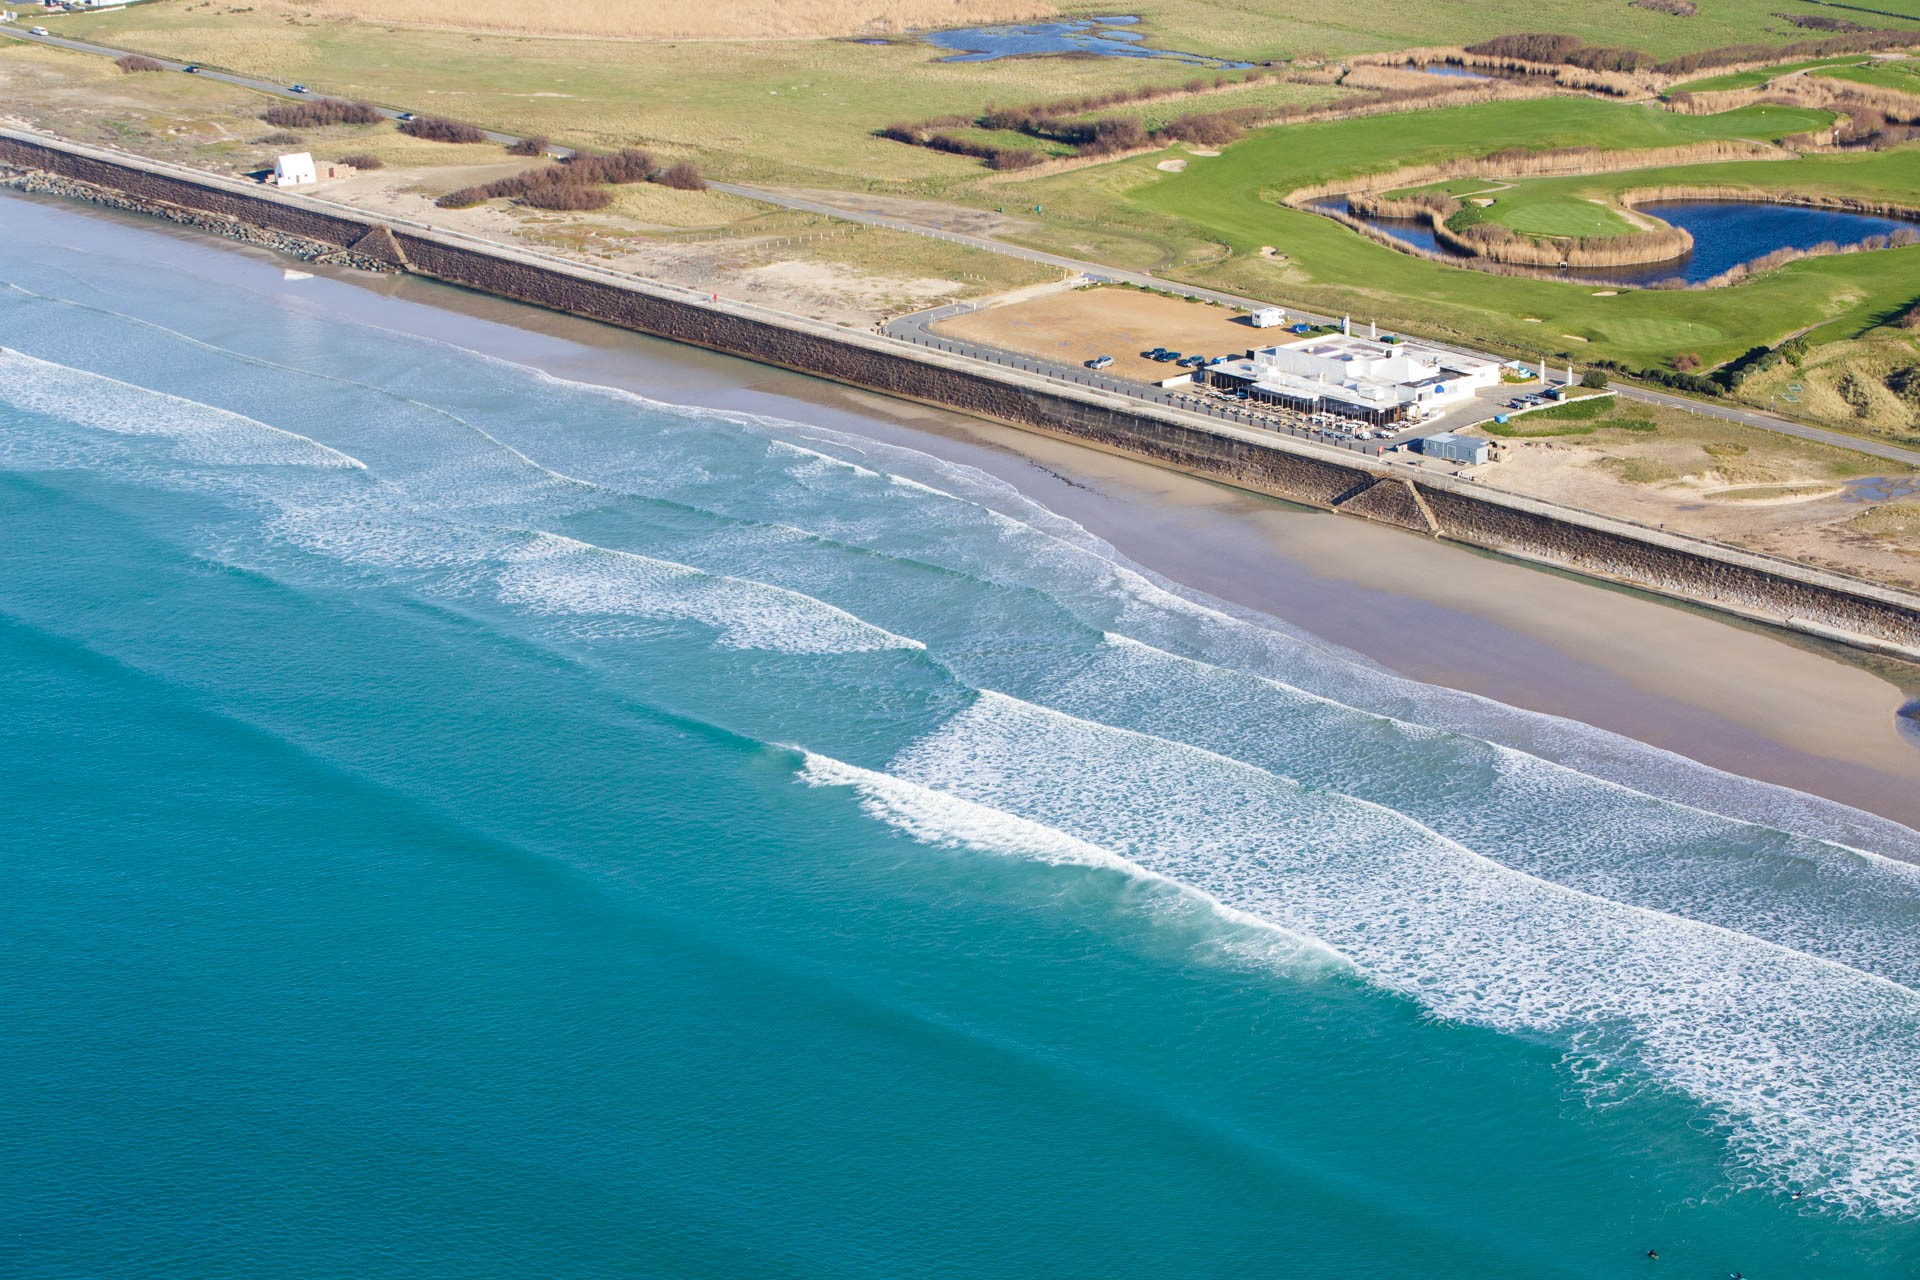 Aerial View of the Water Splash and surf at St Ouen's Bay